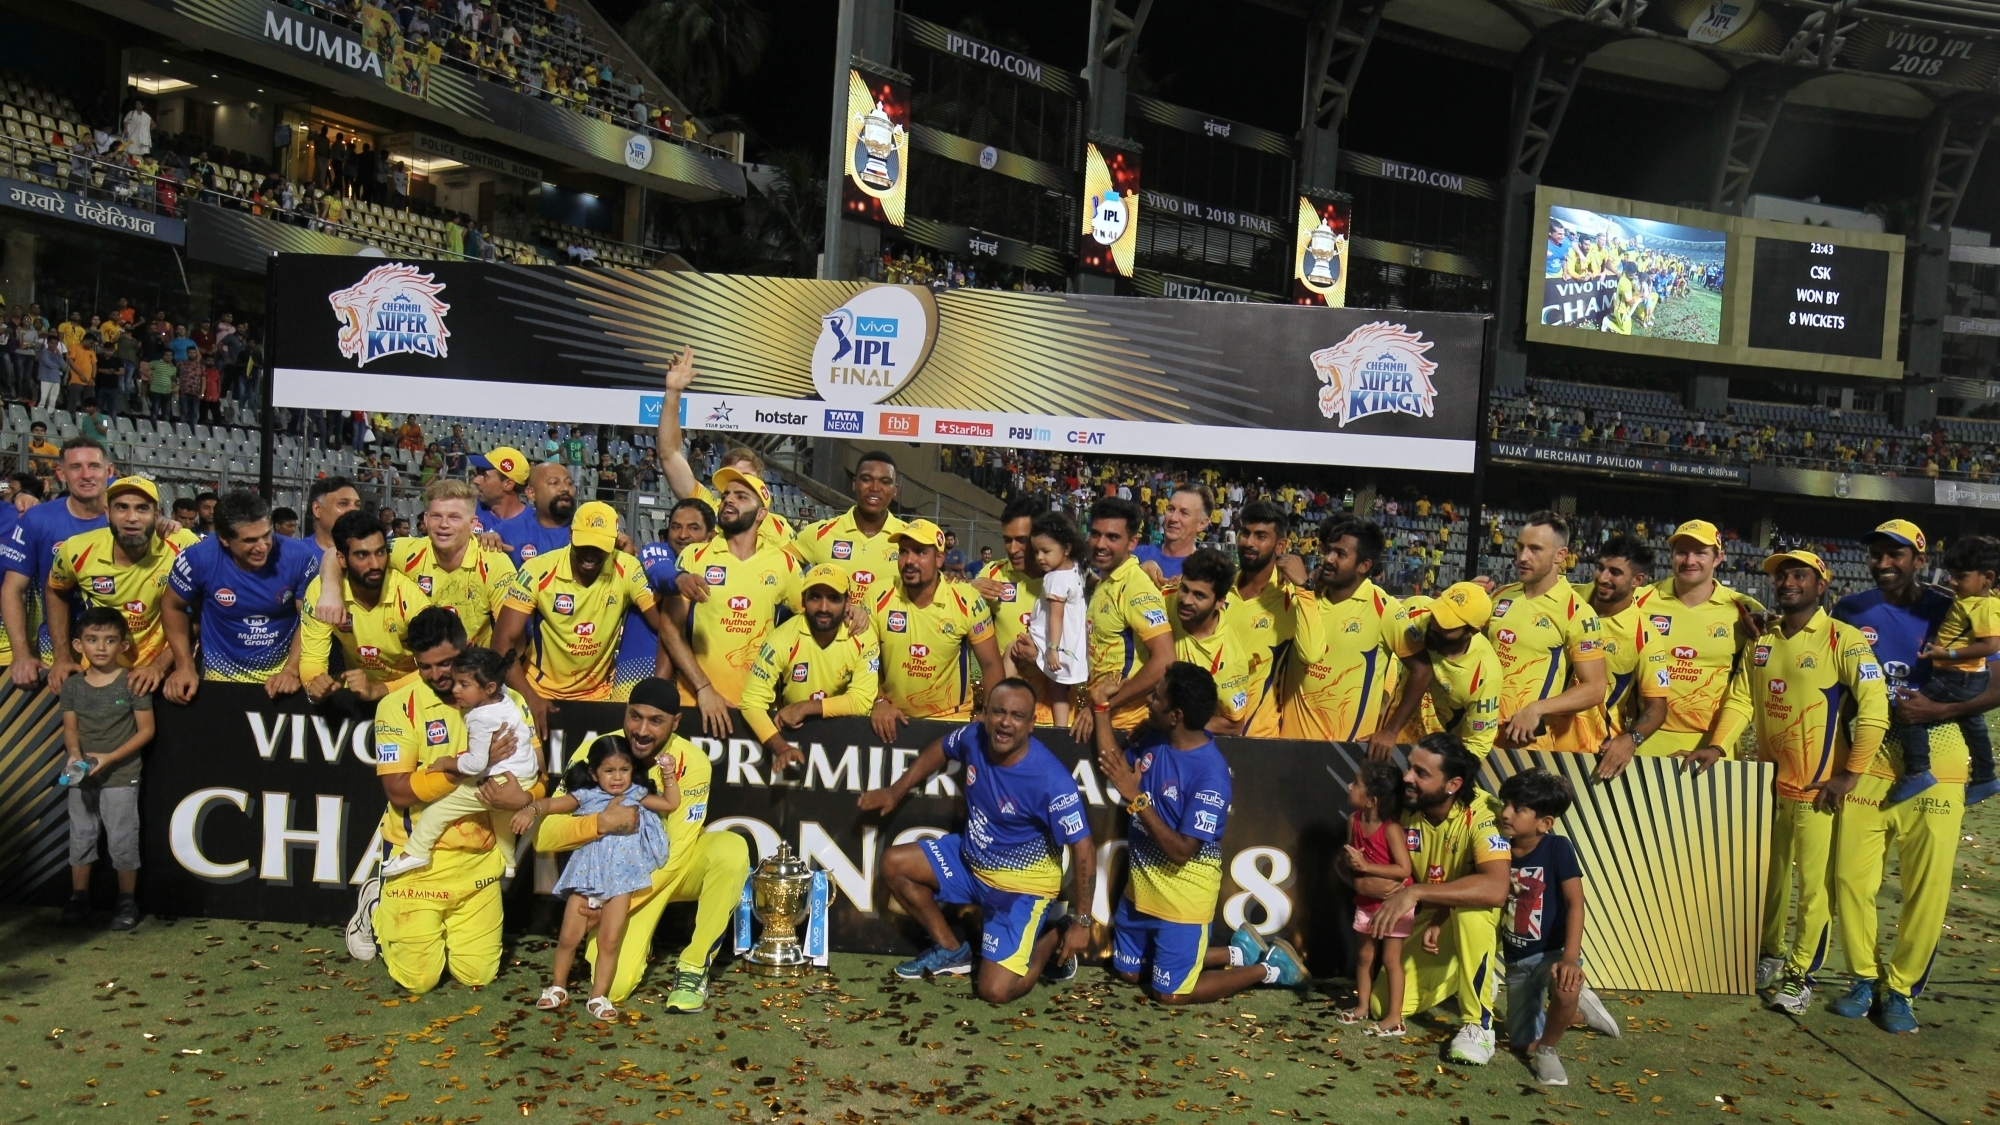 IPL 2018 : Chennai Super Kings (CSK) - Statistical Review for IPL 11